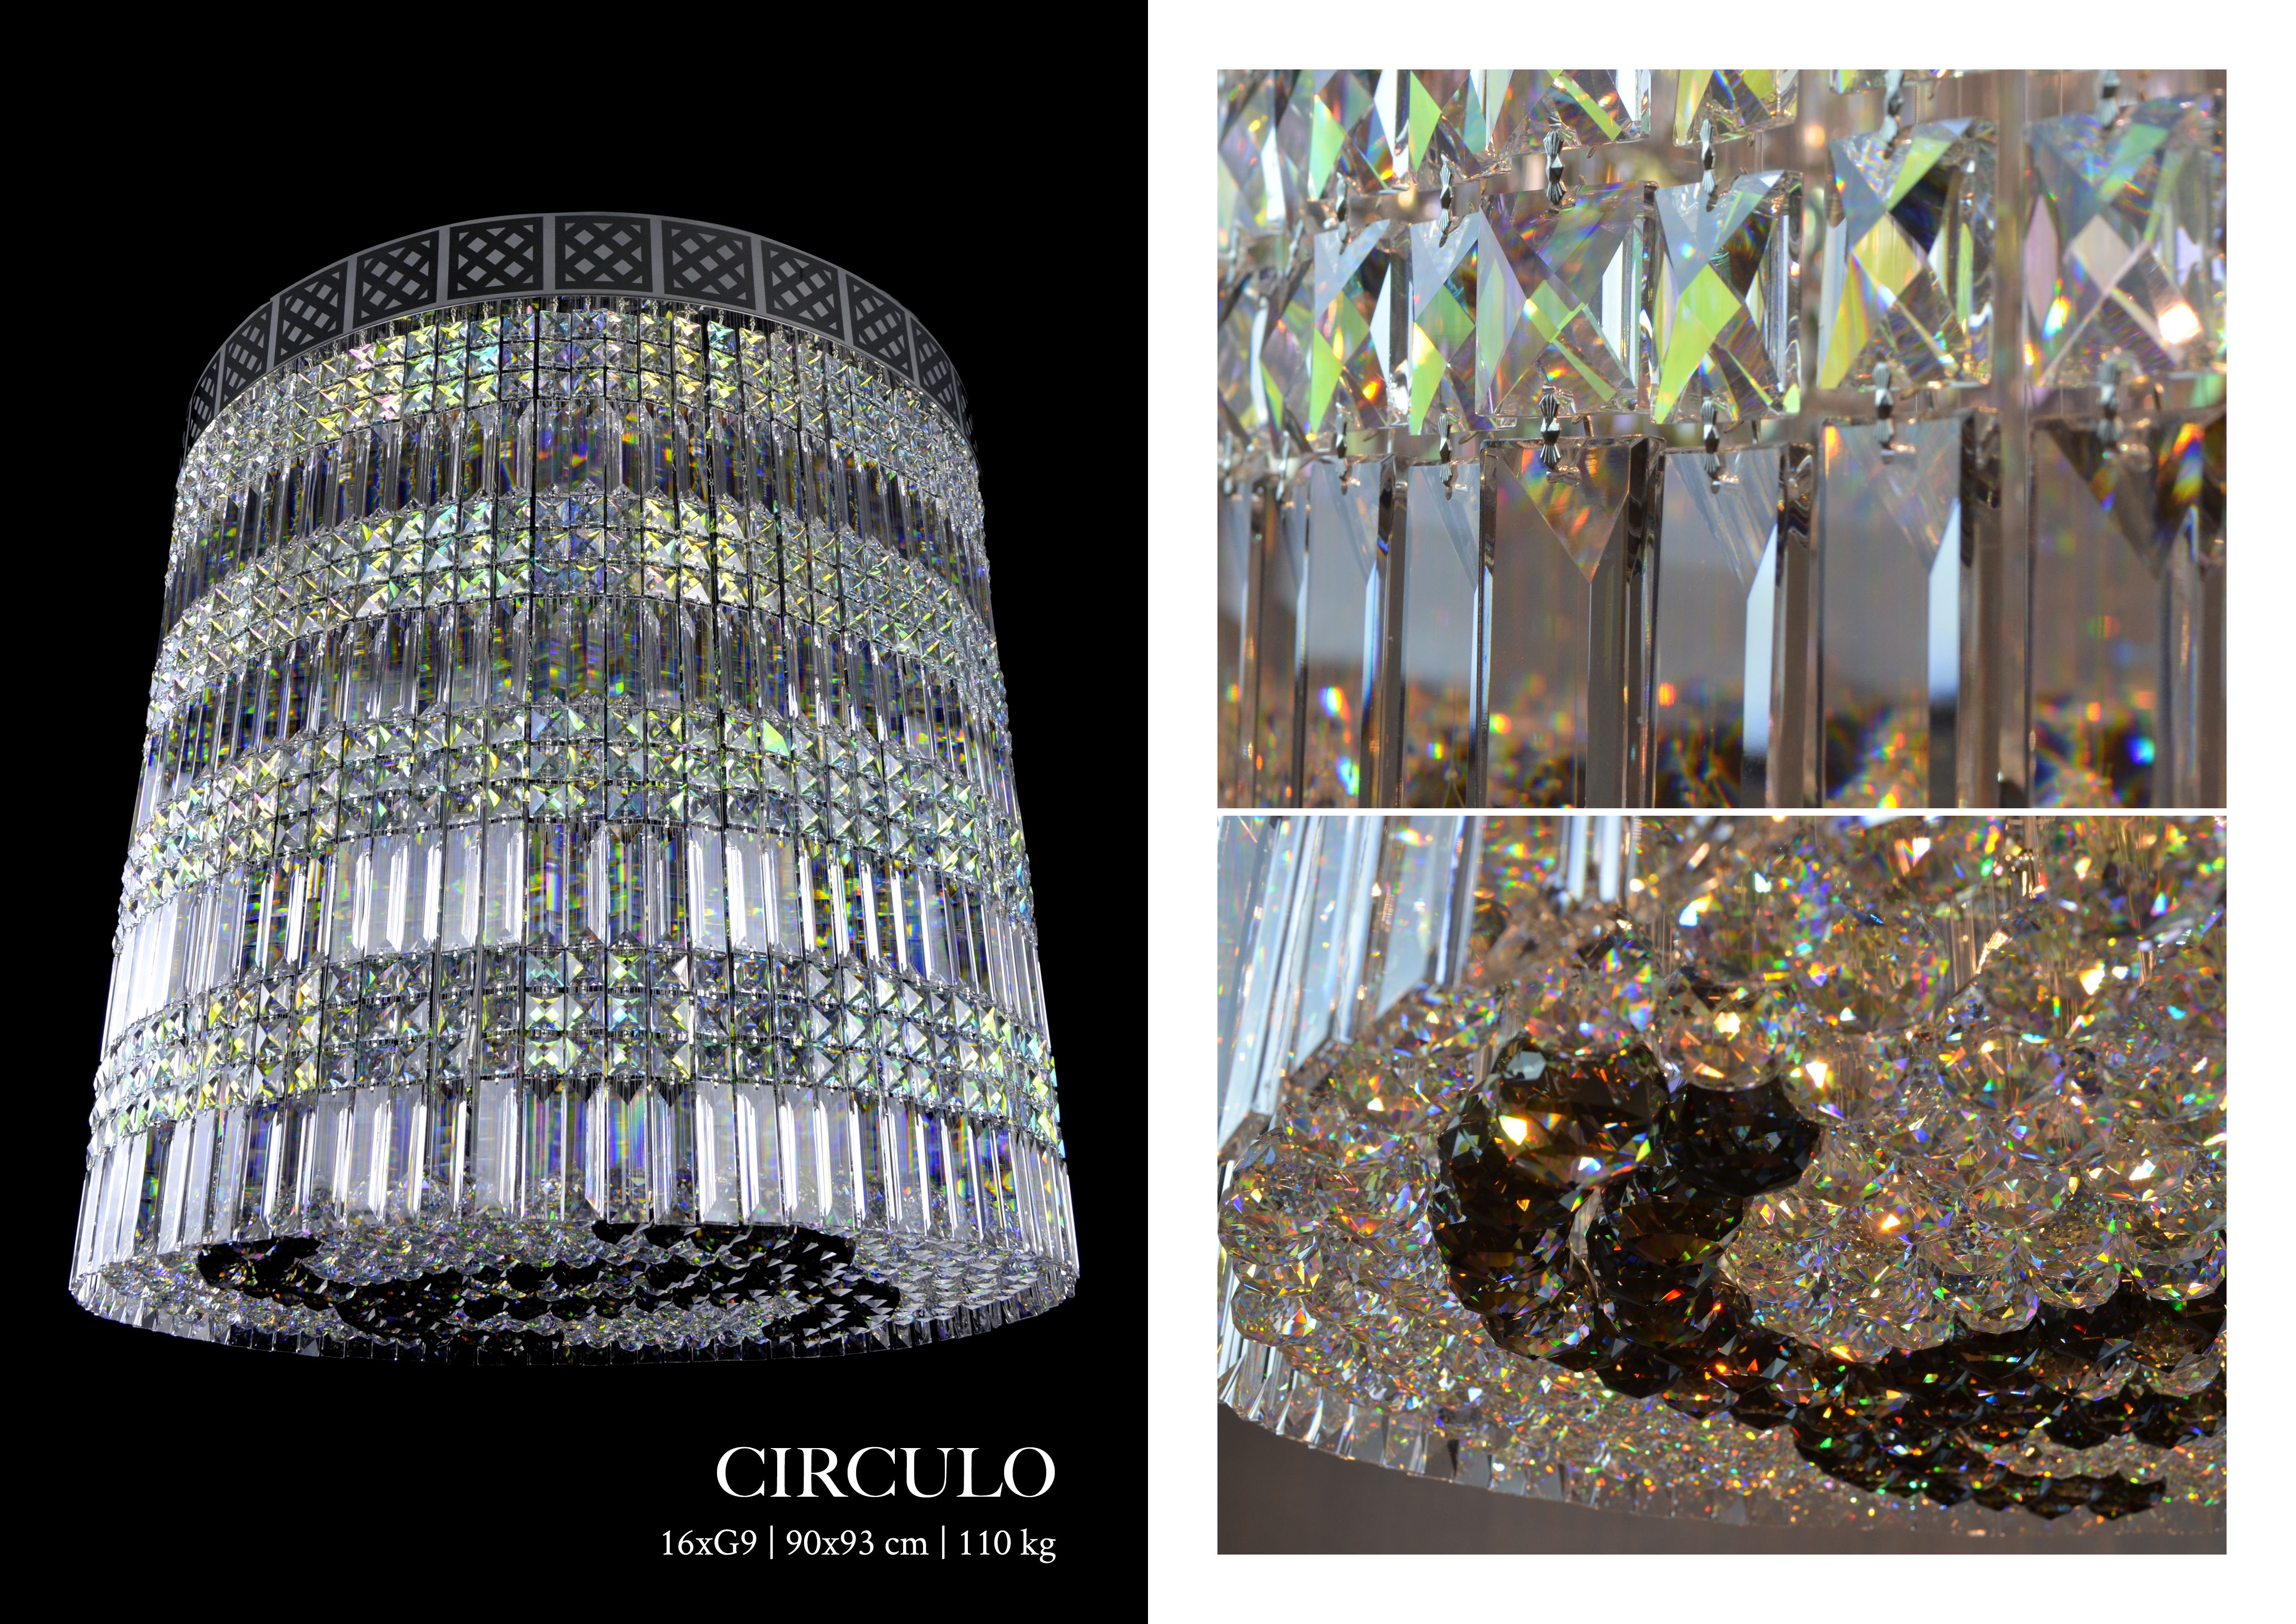 Introducing The Circulo Collection From Our Upcoming Catalogue Of